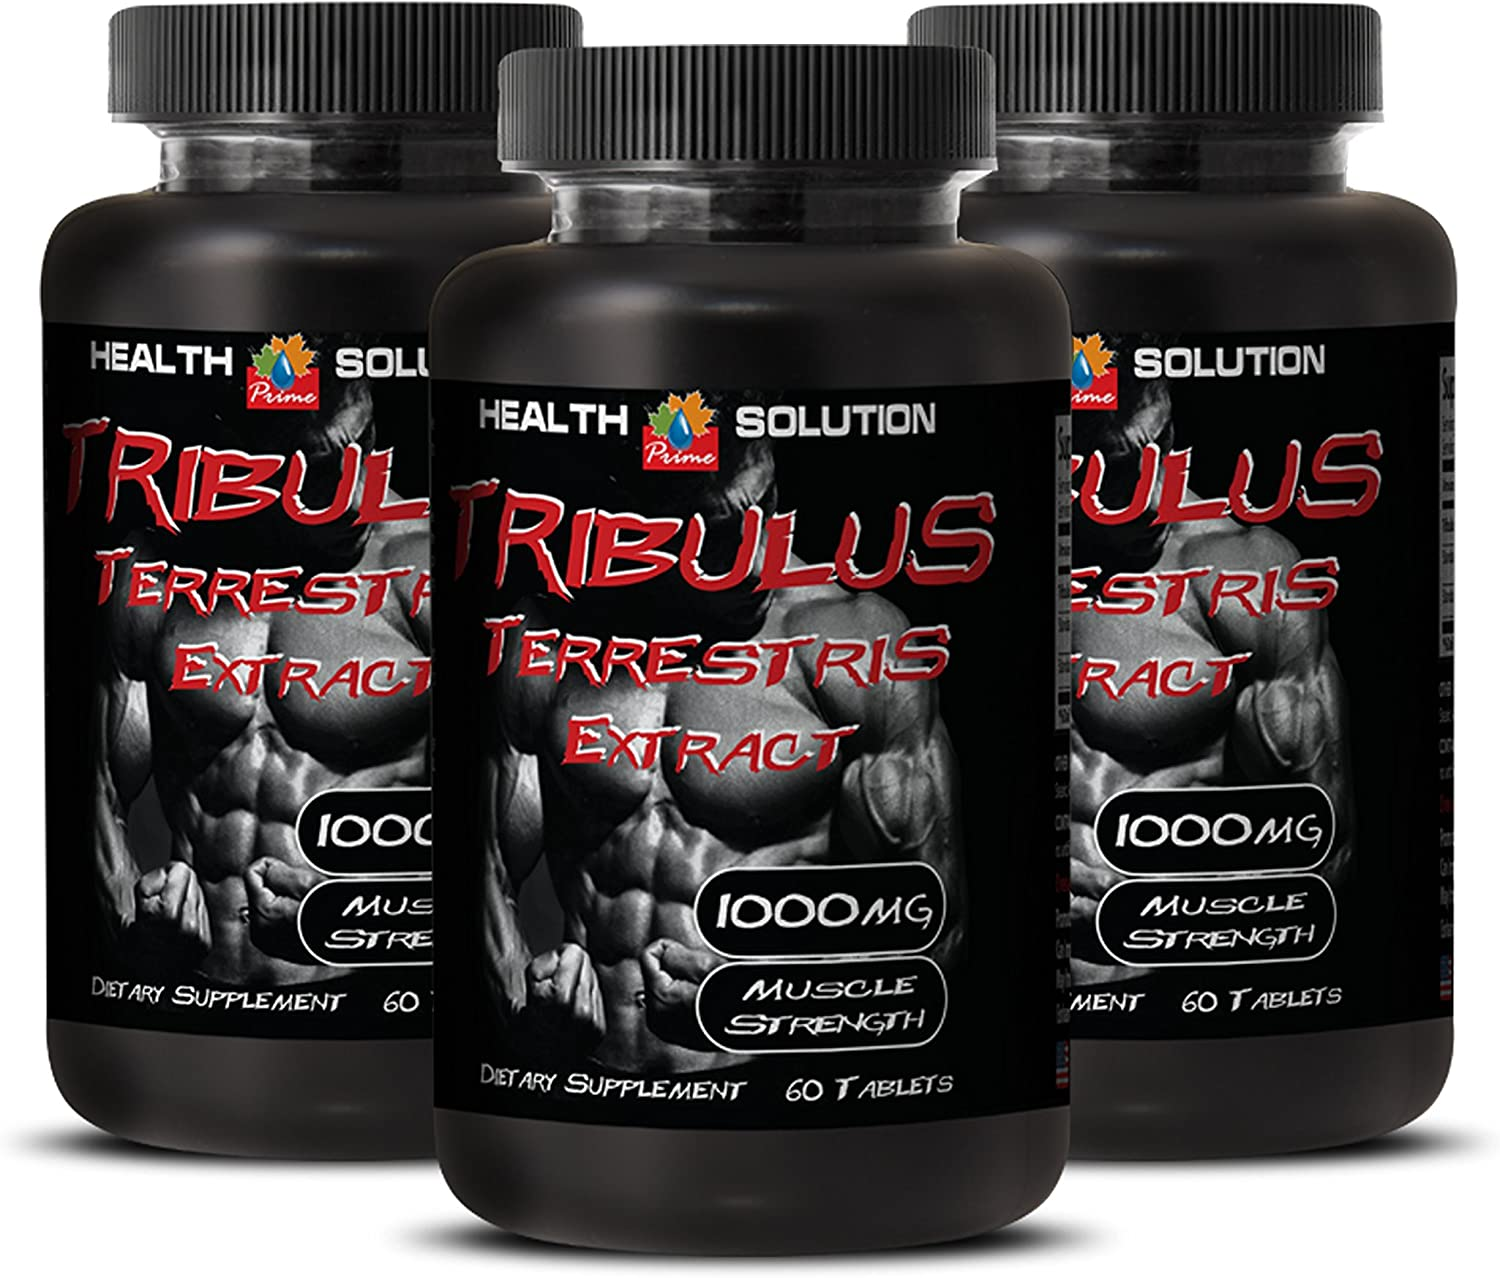 Purchase Testosterone Booster Sex Drive - Muscle TERR TRIBULUS Strength Albuquerque Mall